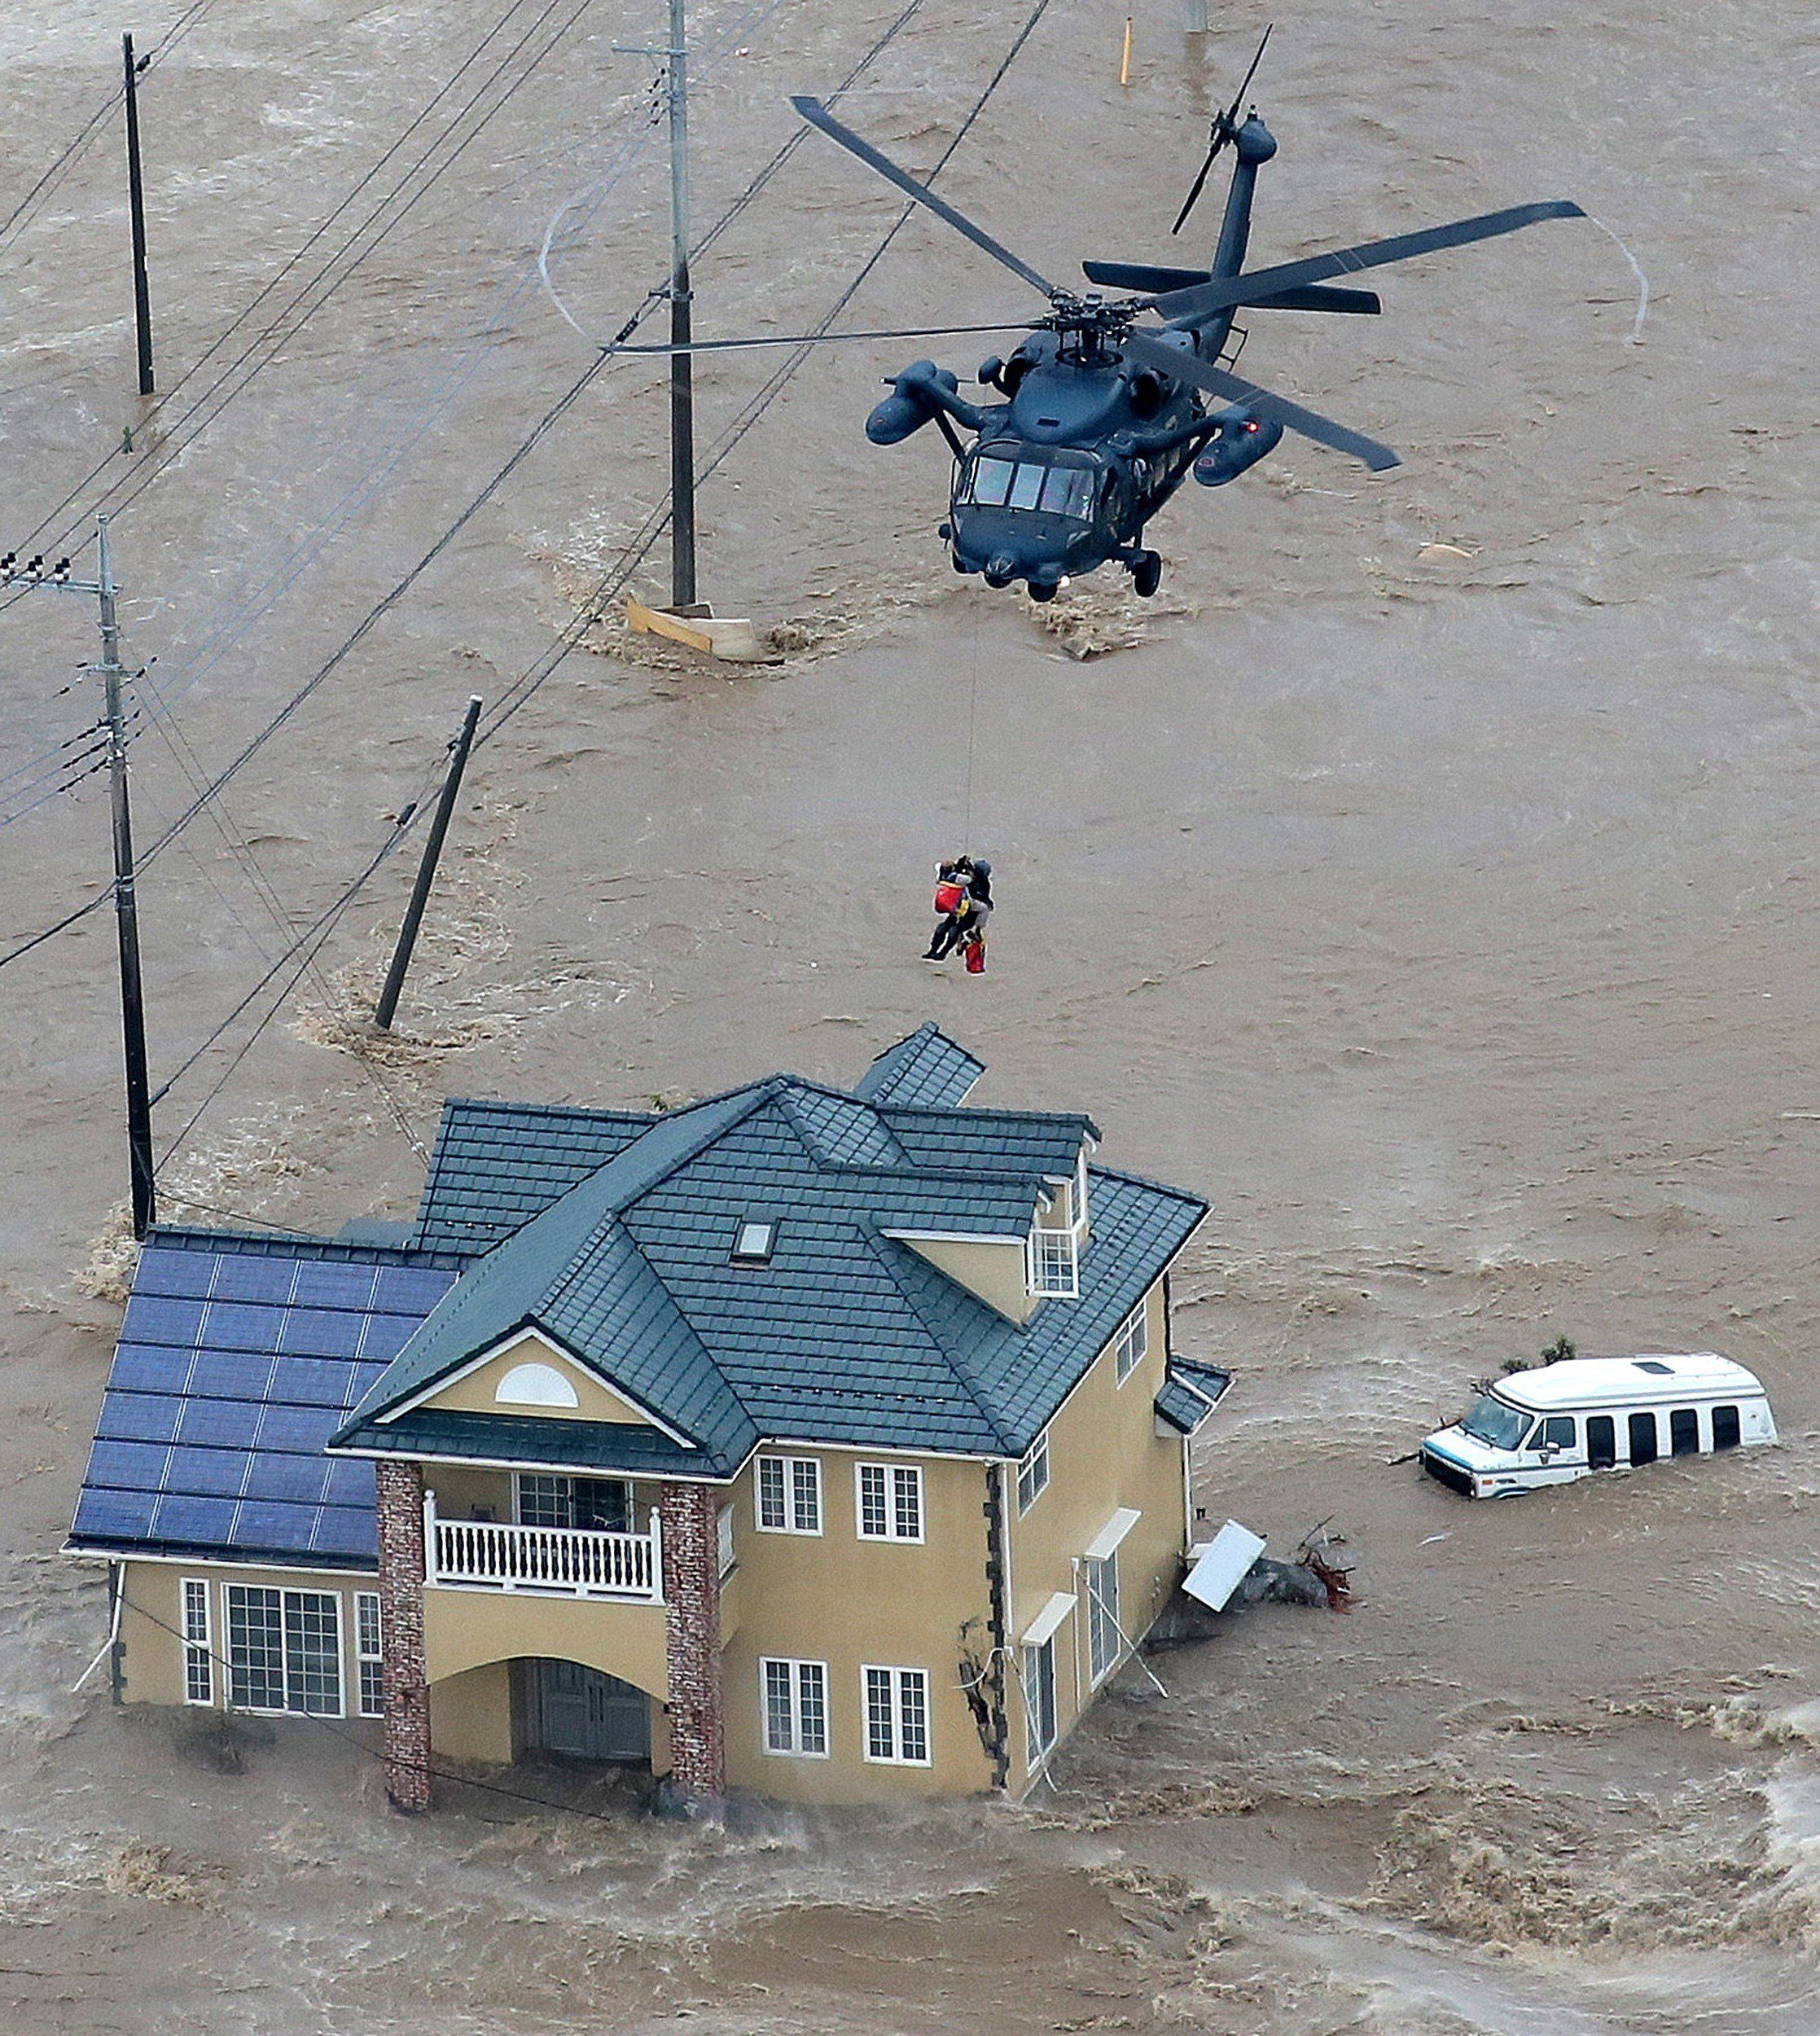 Local residents were rescued from their flooded home by a helicopter of the Ground Self Defence Force in Joso, Japan.